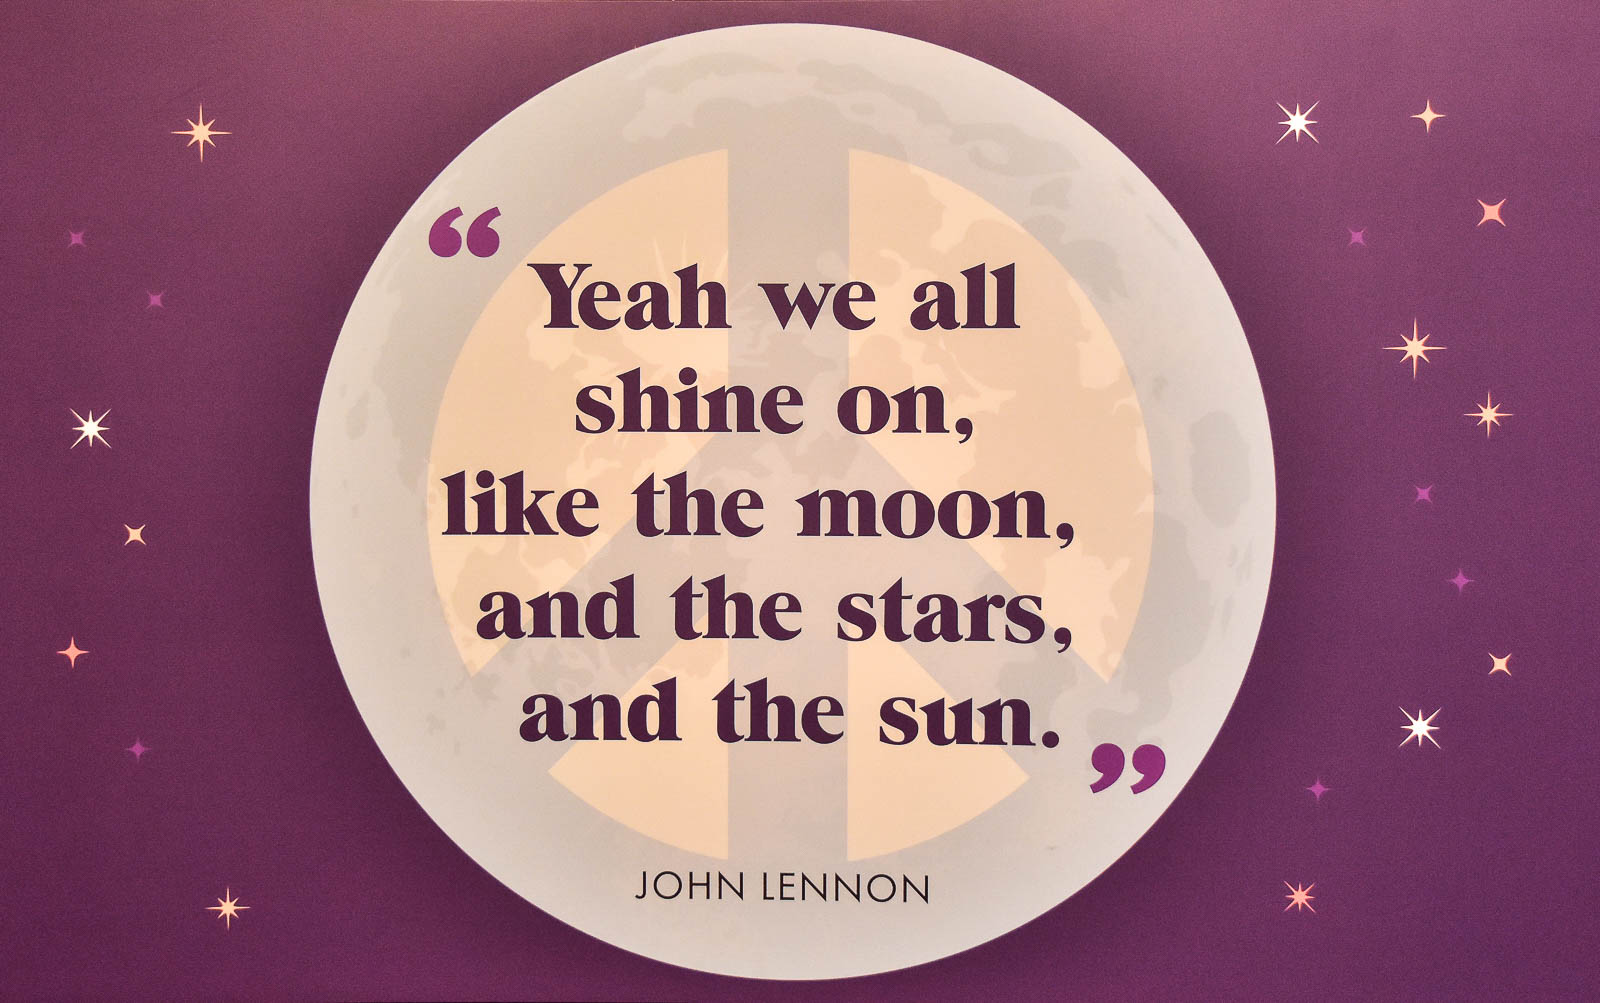 Yeah we all shine on, John Lennon